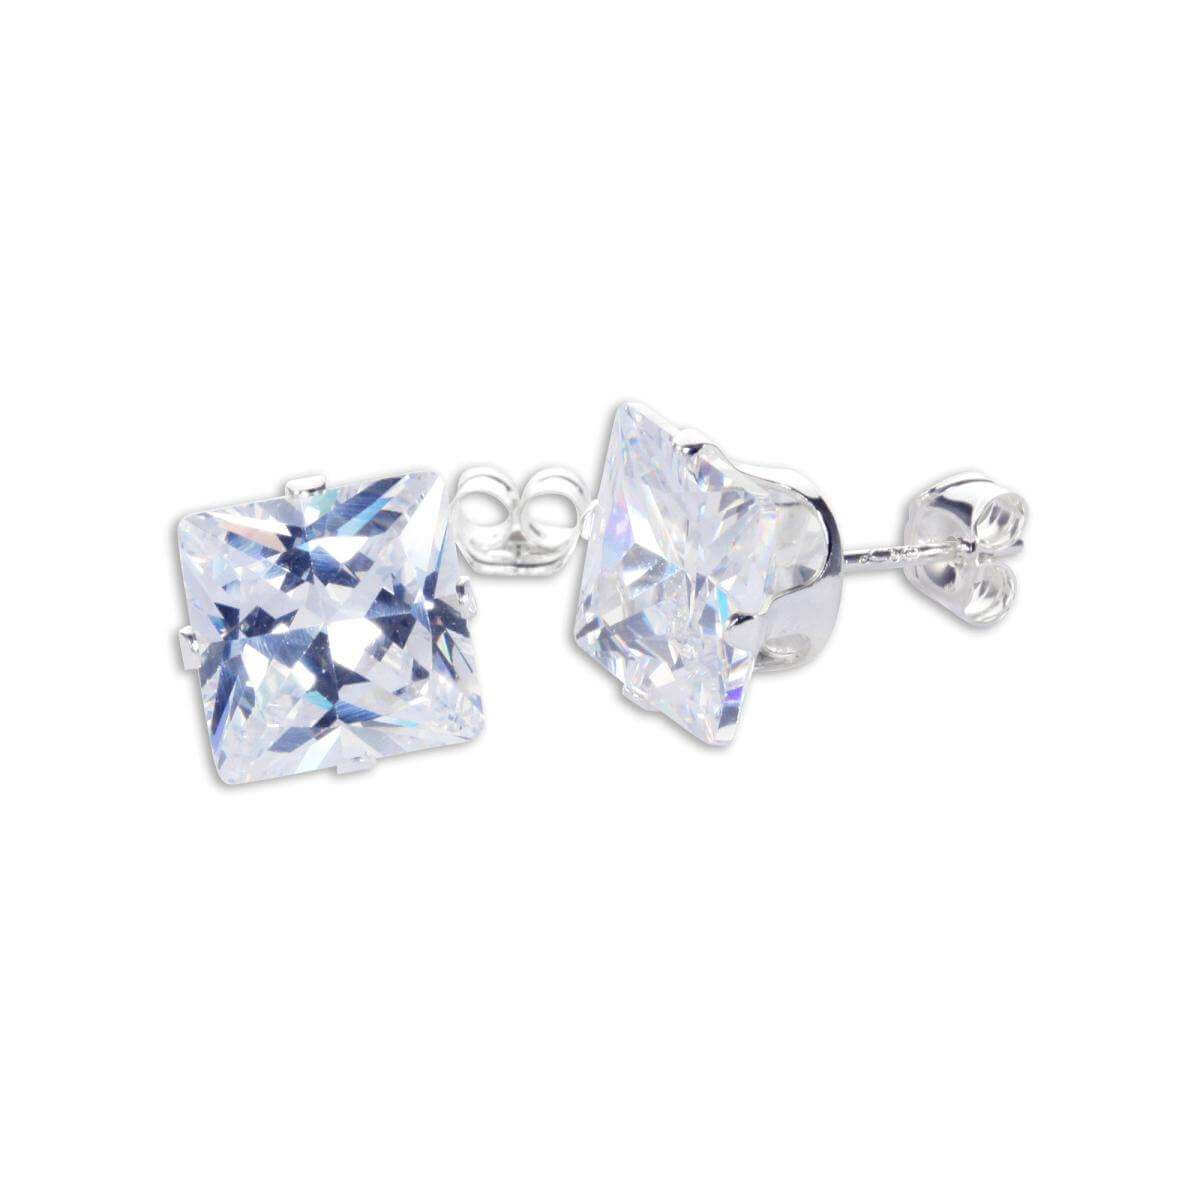 Sterling Silver Clear CZ 8mm Square Stud Earrings